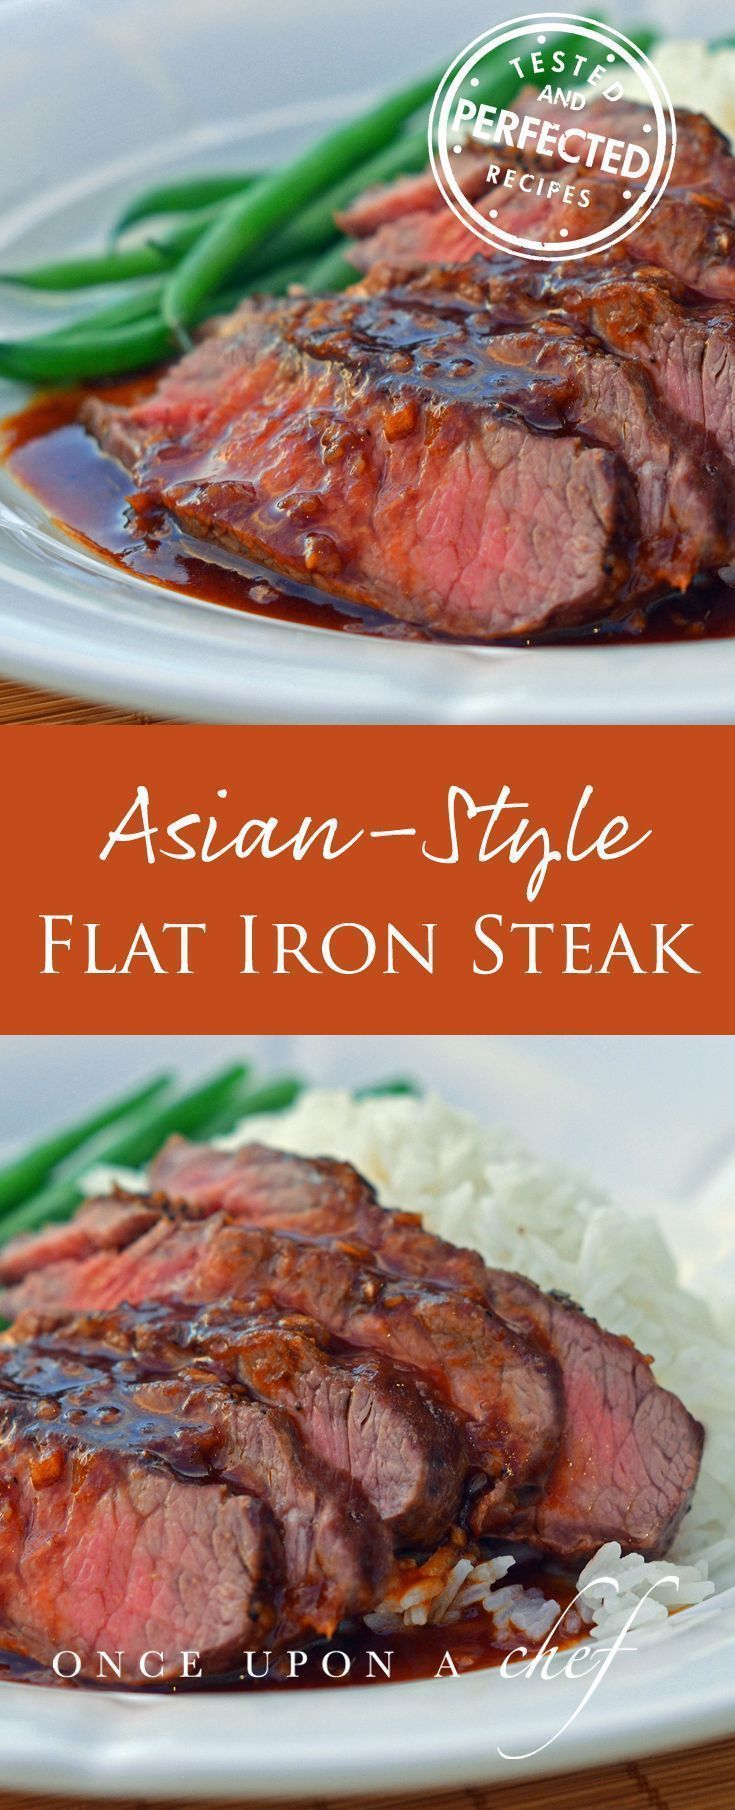 Broiled Asian-Style Flat Iron Steak - topped with a rich Asian-style brown sauce.